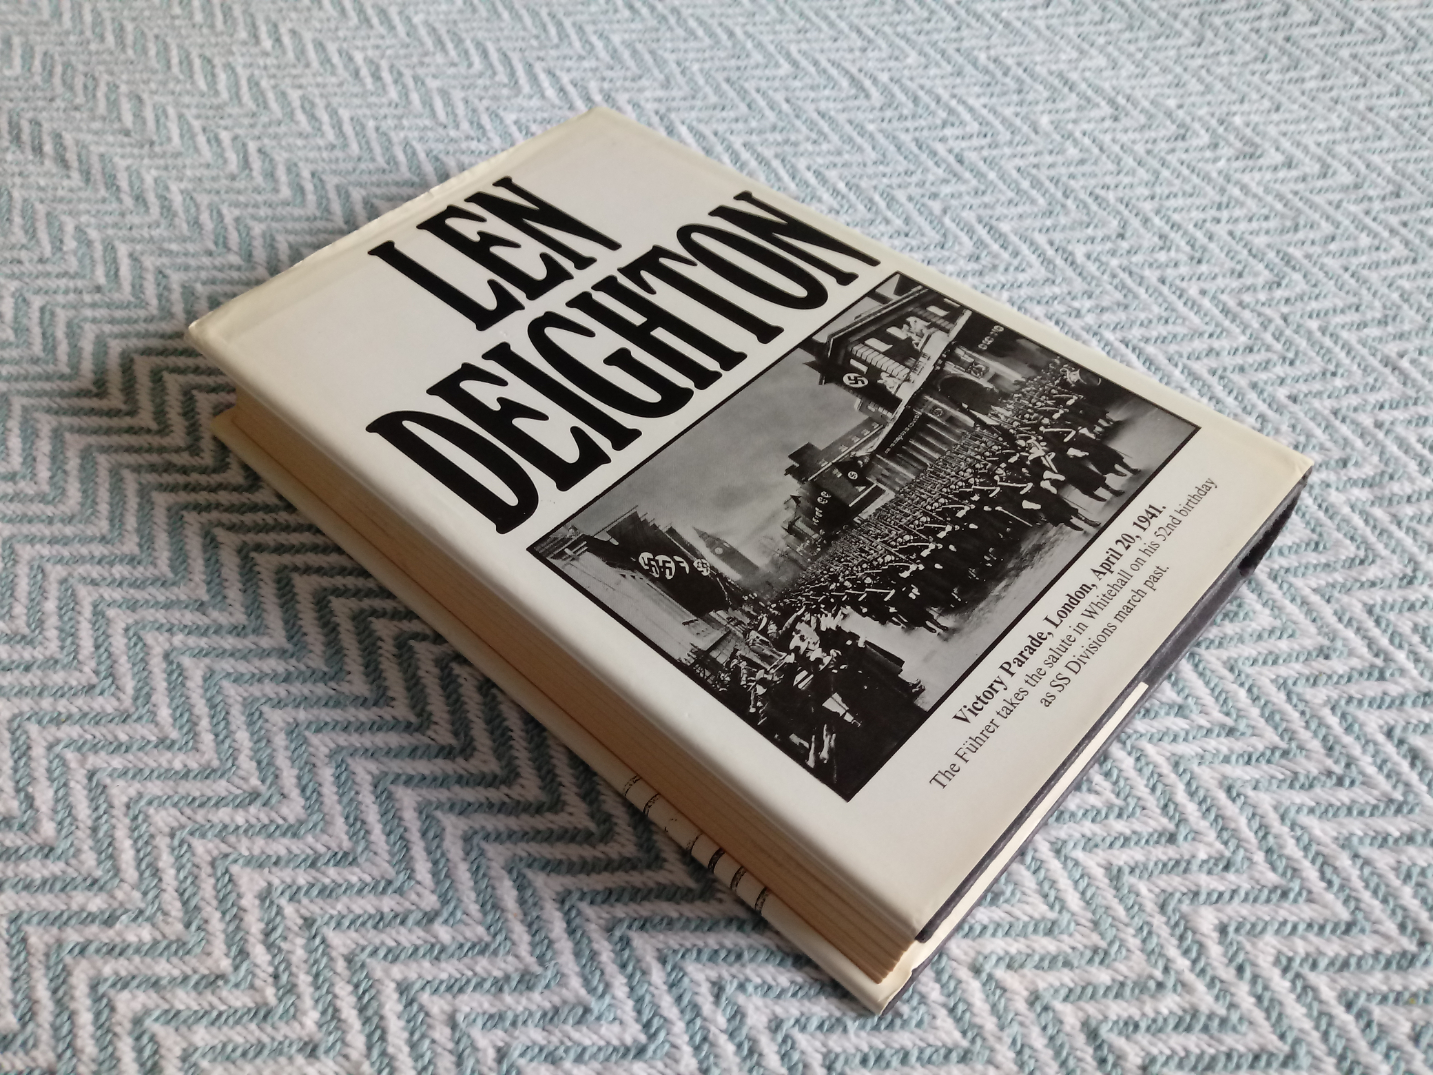 SS-GB Nazi-Occupied Britain 1941 by Len Deighton hardback book 349 pages published 1st edition - Image 2 of 3